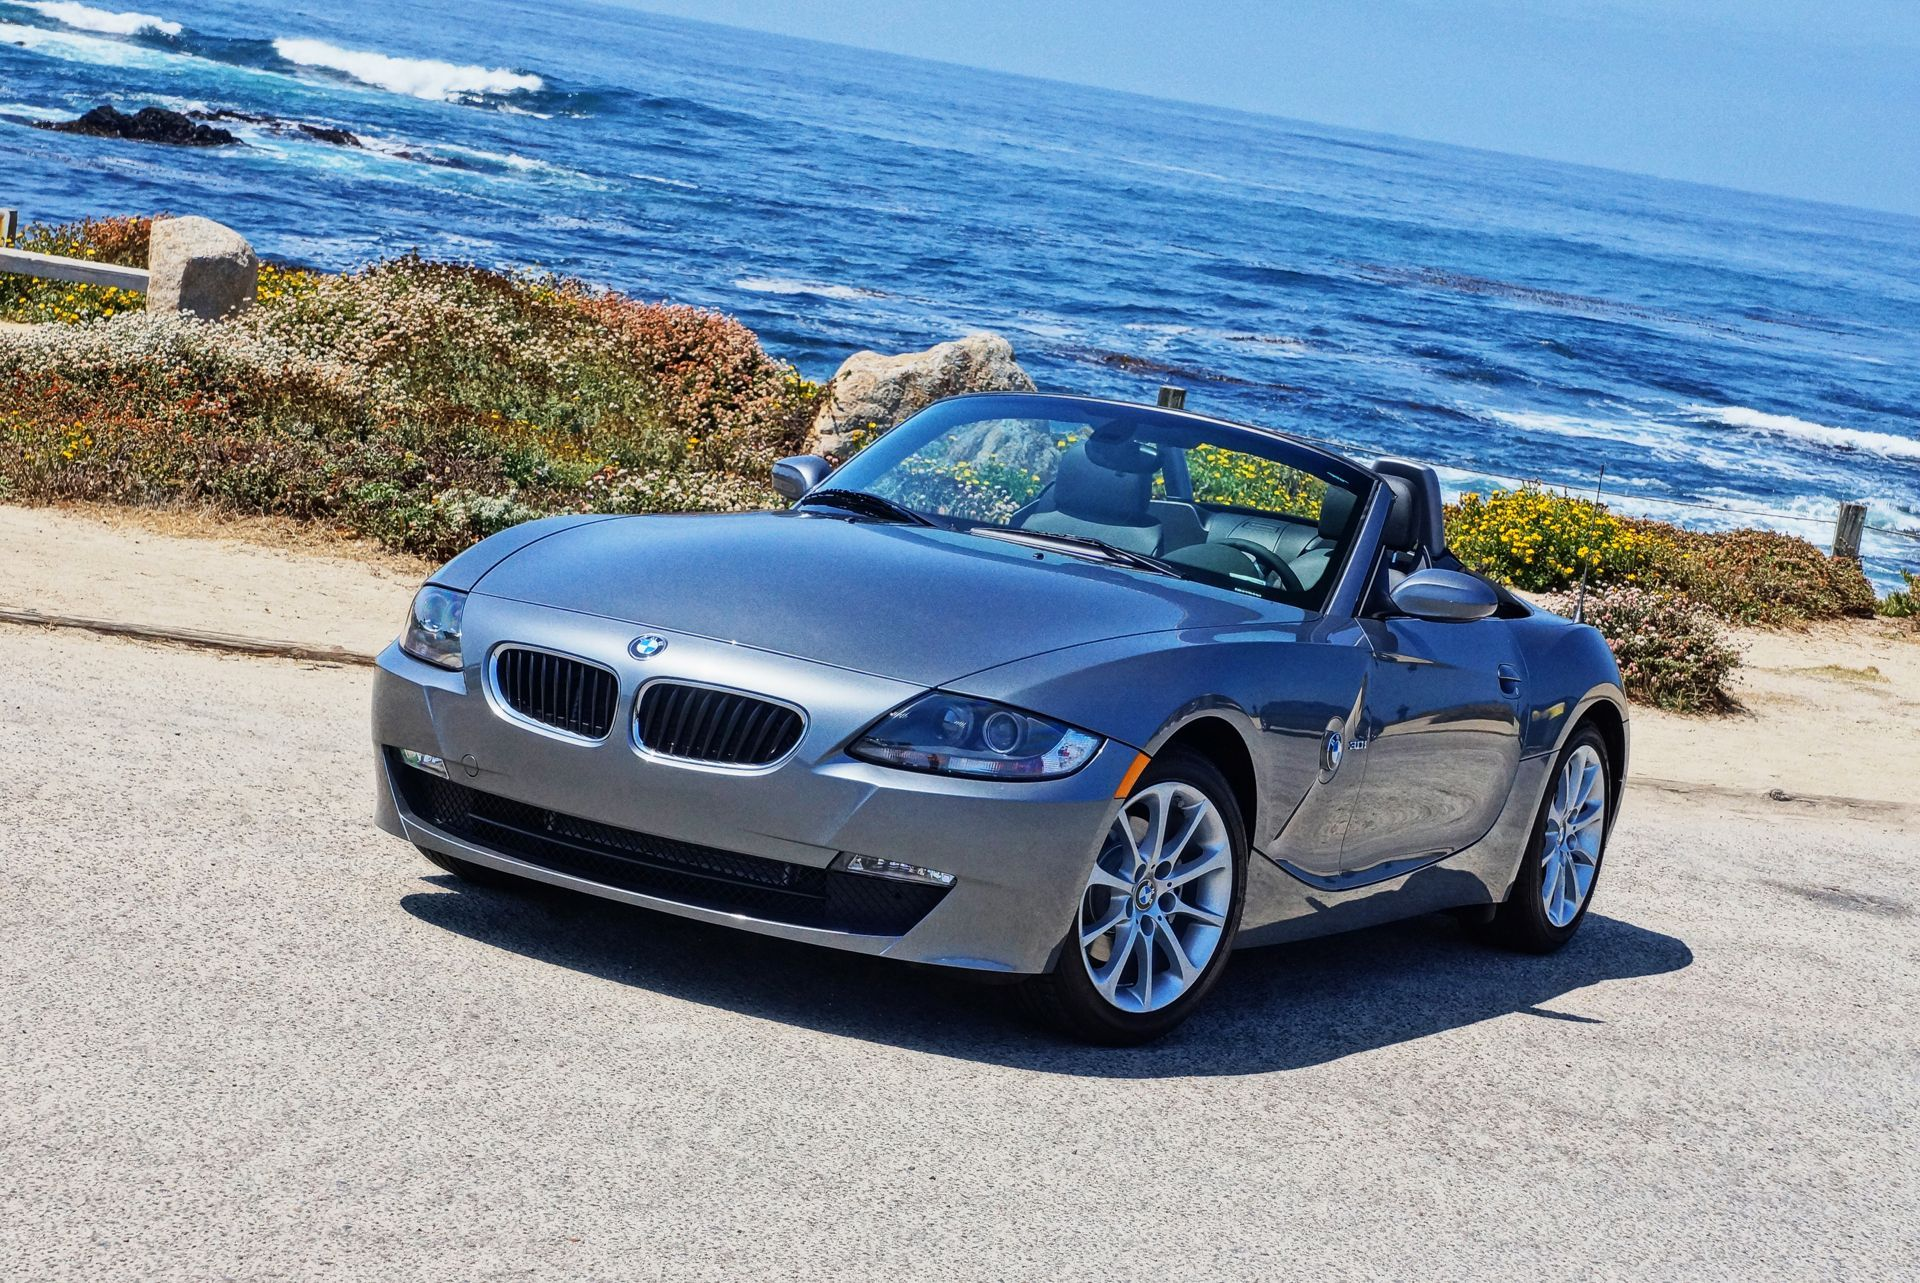 Our first impression of the new BMW Z4 Concept that made it's debut at Pebble Beach 2017.